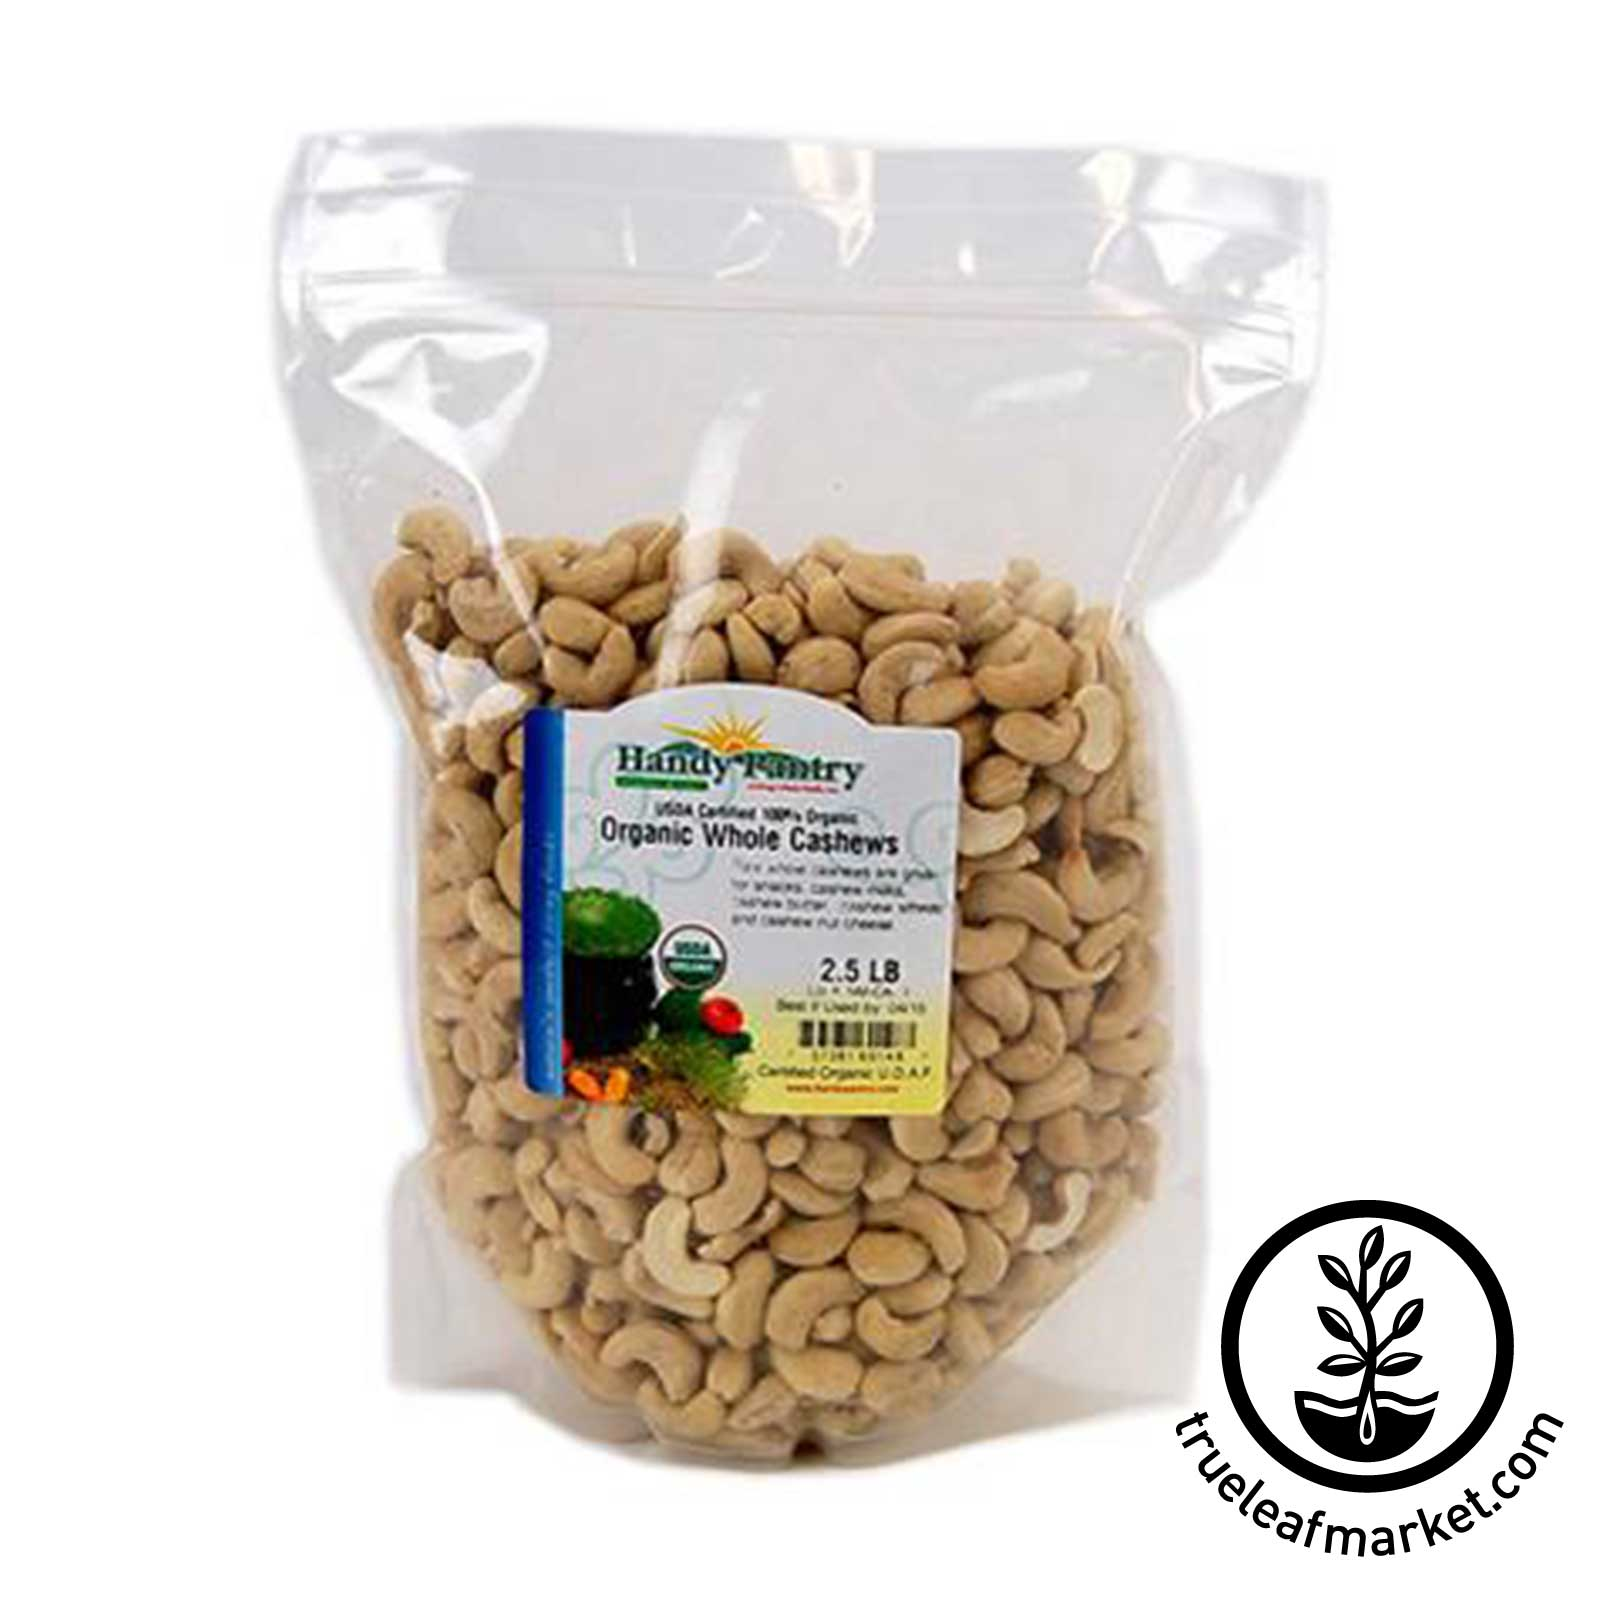 Organic Whole Cashews - 2.5 Lbs  whole cashews, organic cashews, certified organic cashews